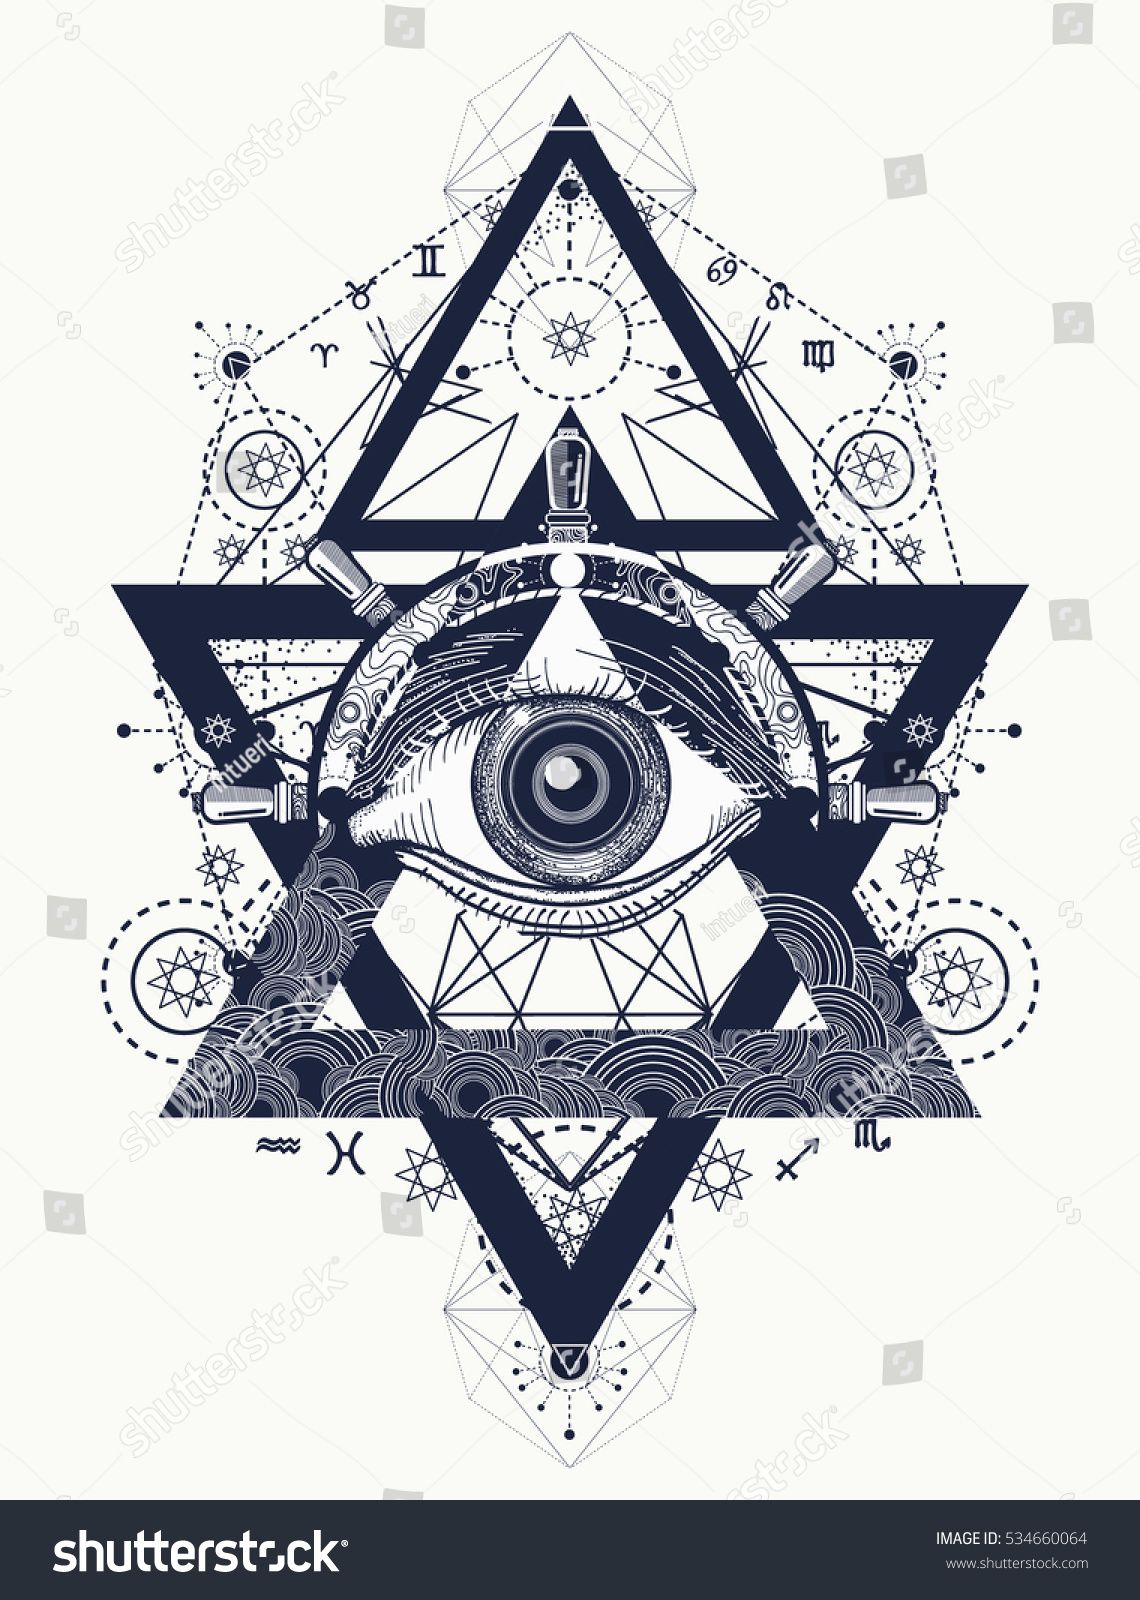 32b30407158b All seeing eye tattoo art vector. Freemason and spiritual symbols. Alchemy,  medieval religion, occultism, spirituality and esoteric tattoo.